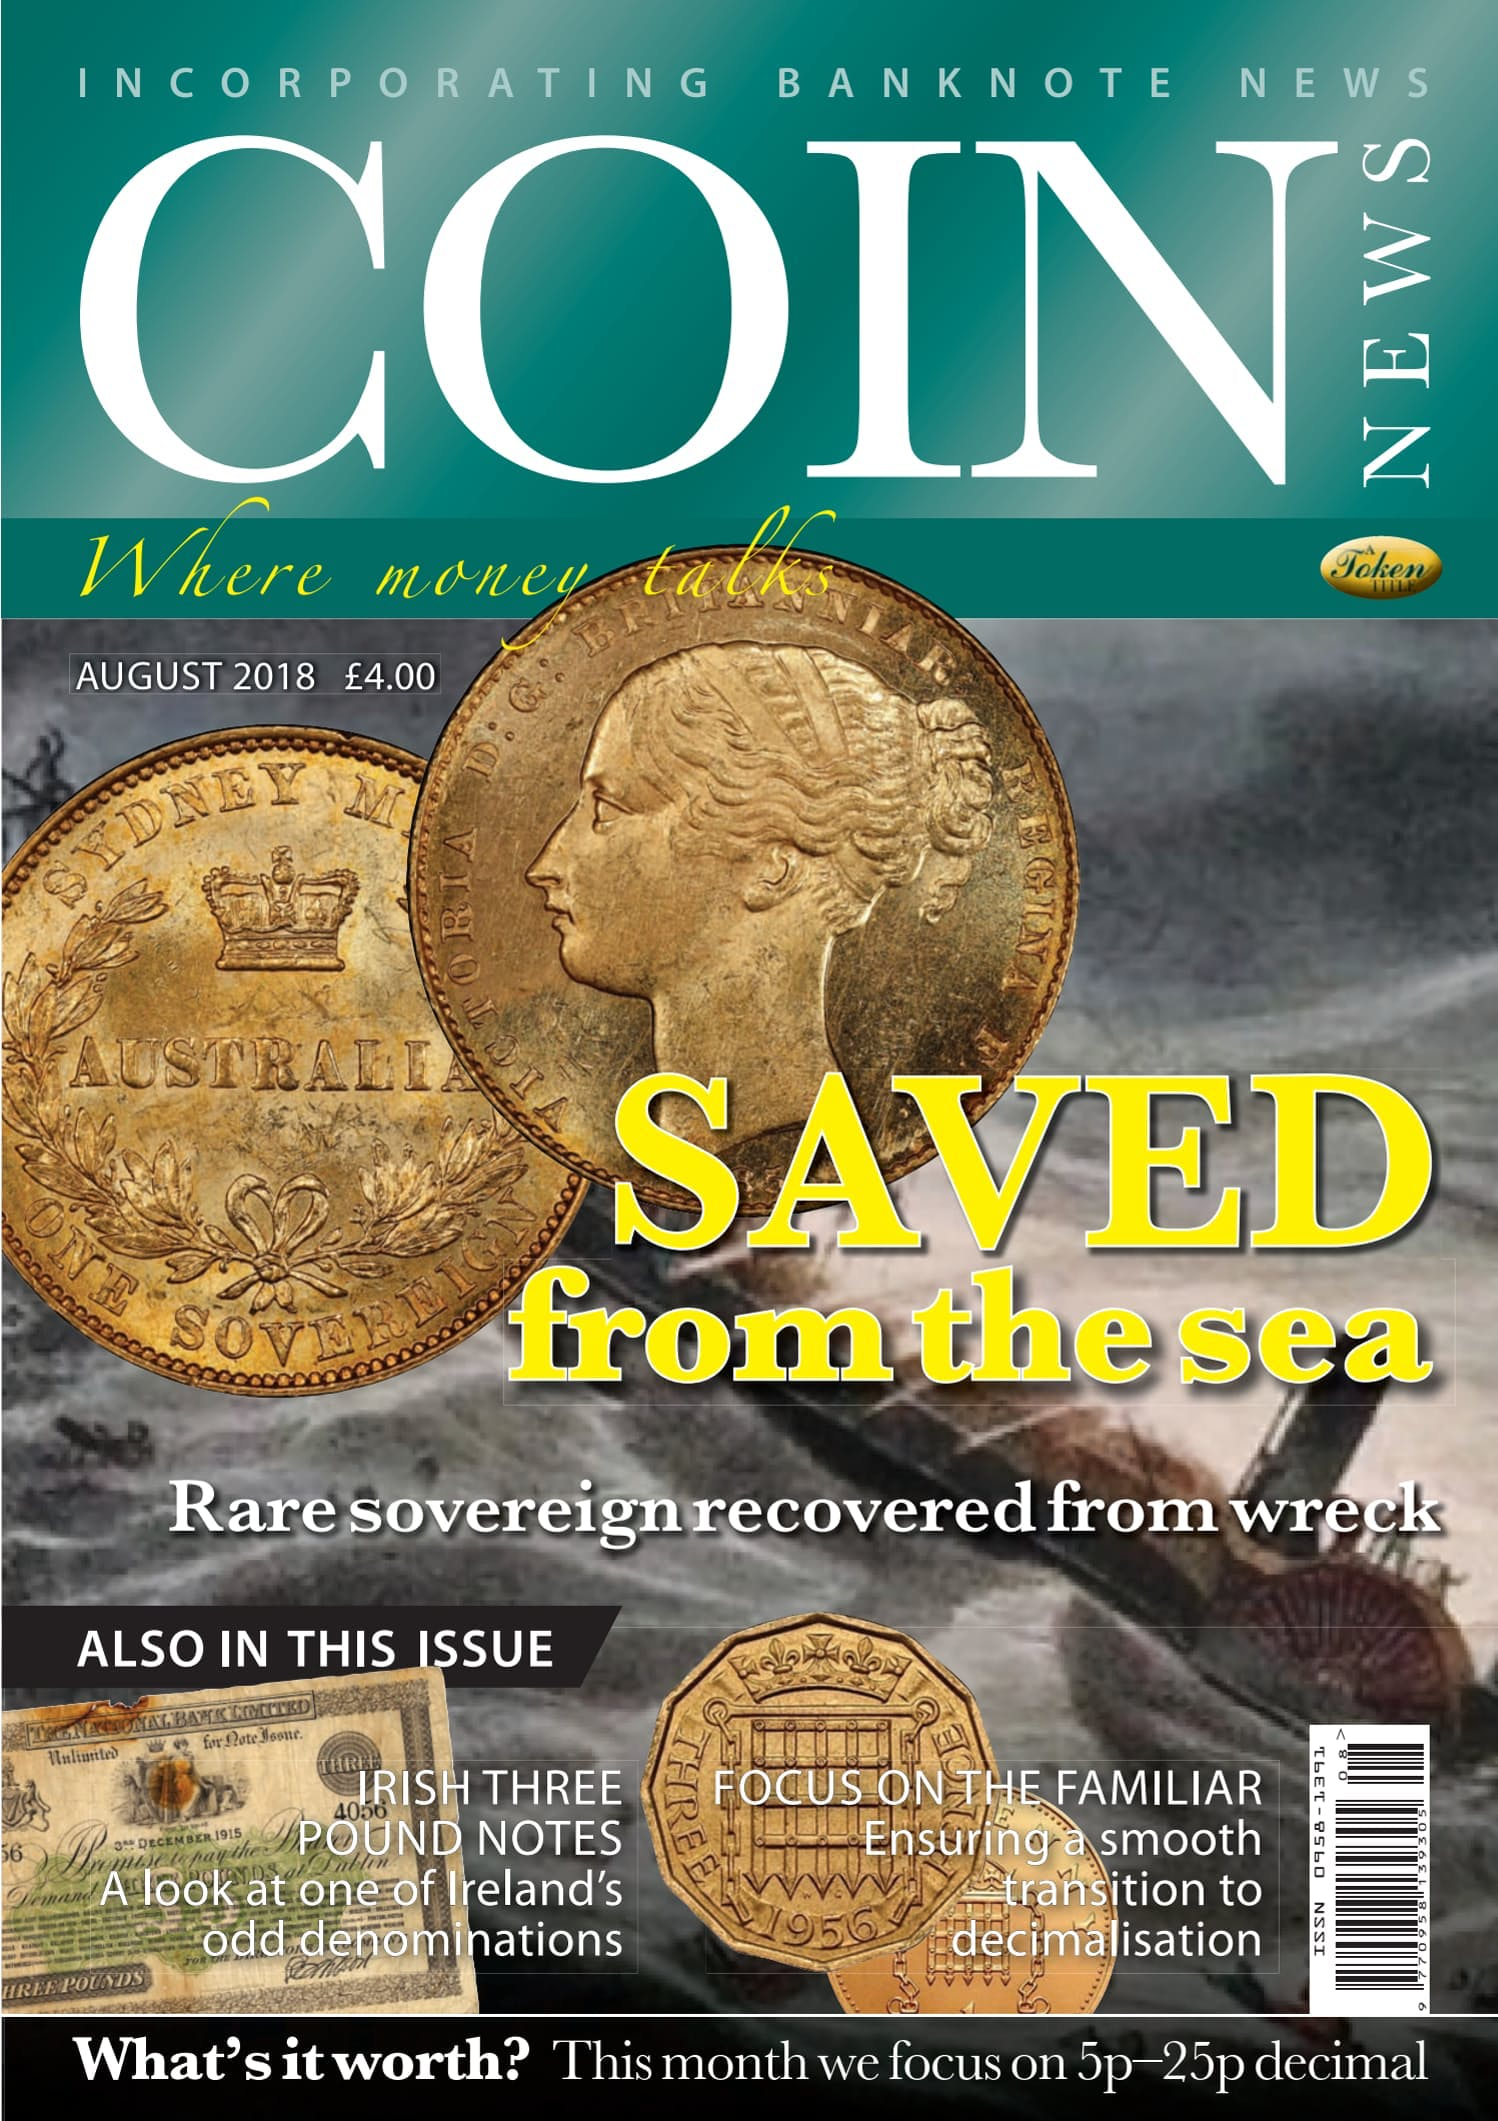 The front cover of Coin News, August 2018 - Volume 55, Number 8